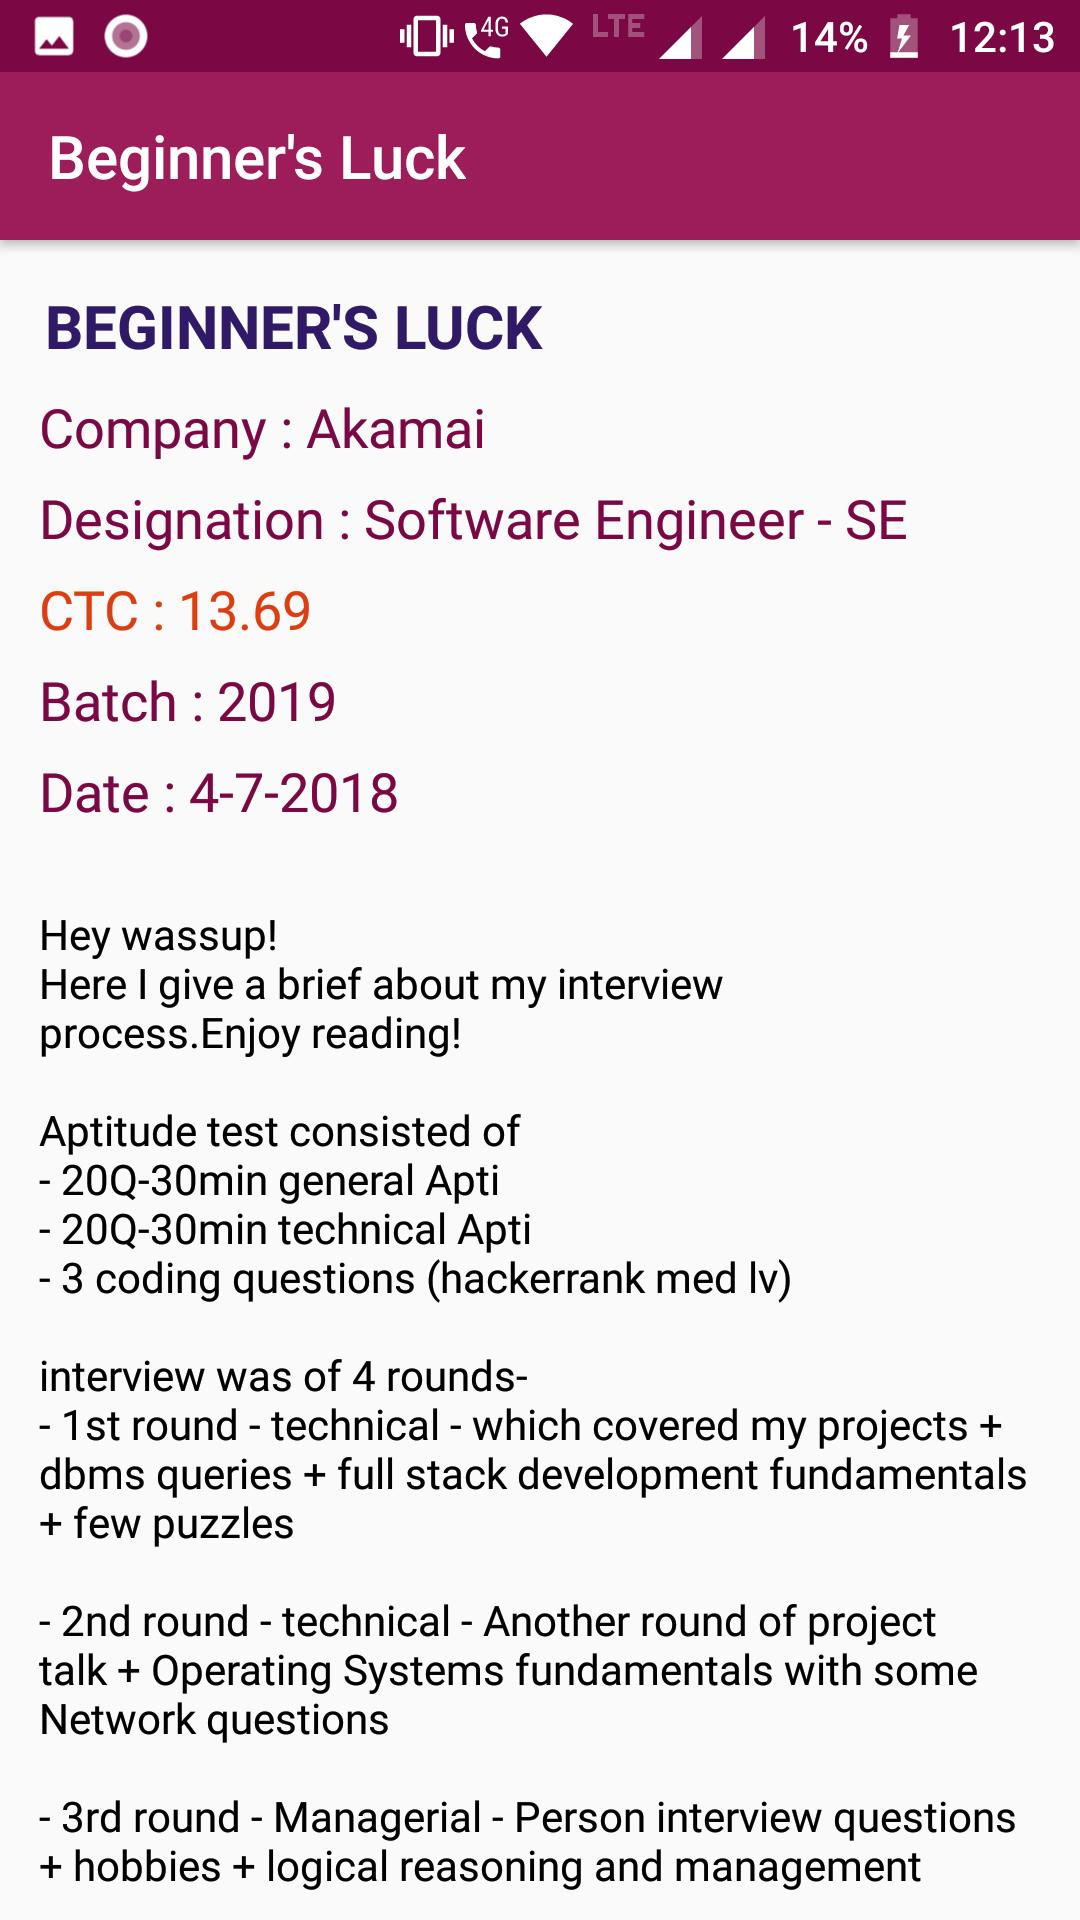 MSRIT CONNECT for Android - APK Download